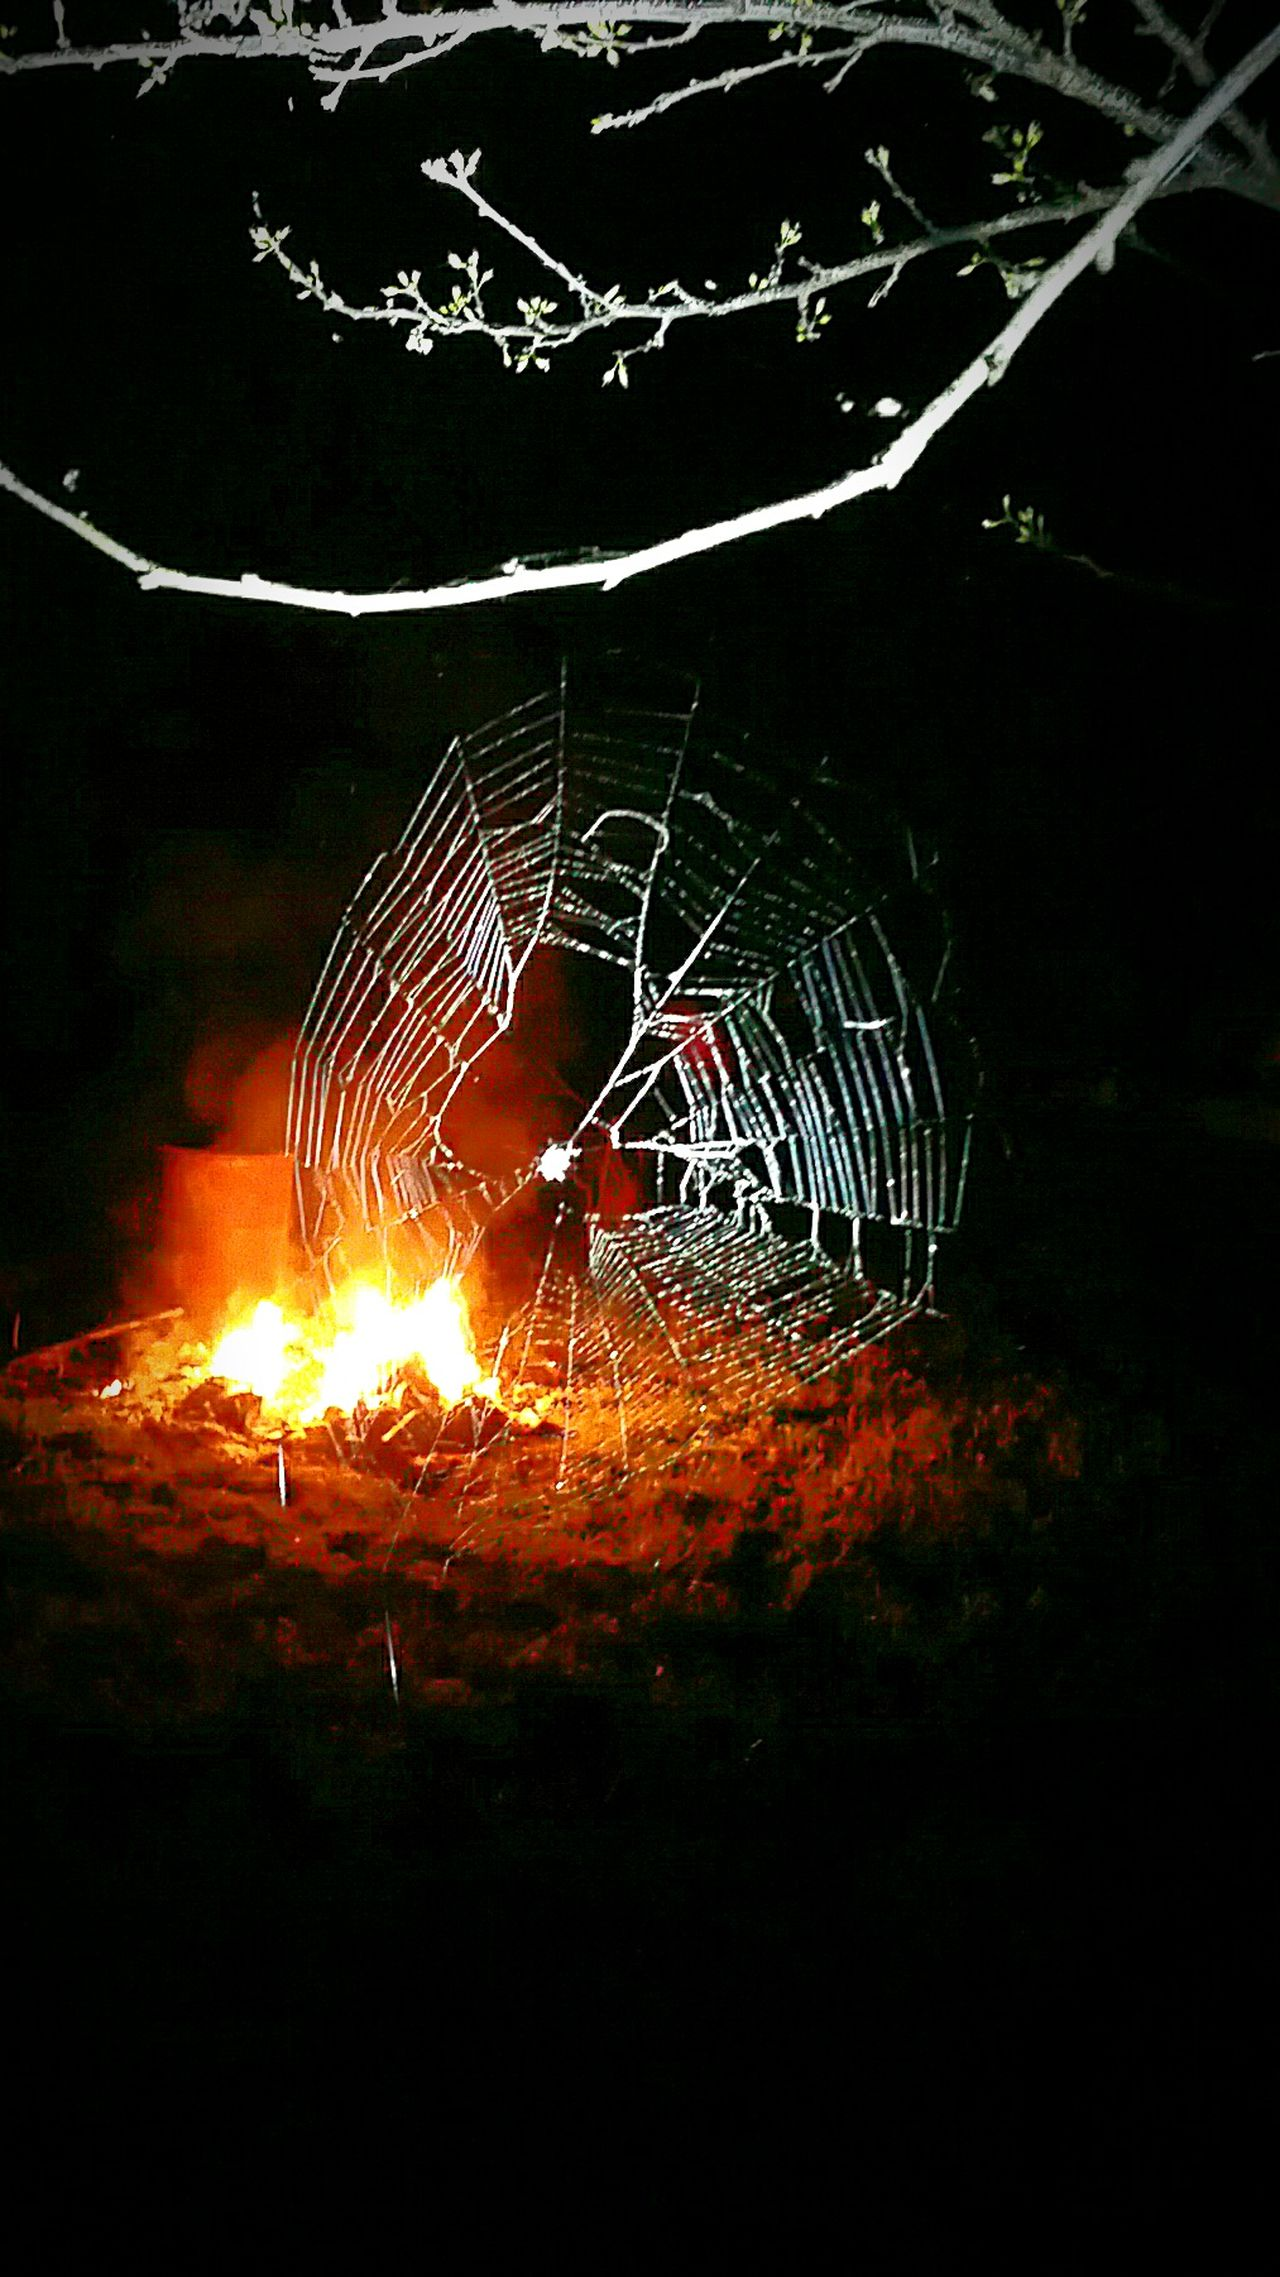 Night Motion Outdoors No People Illuminated Nature Spider Web Beauty In Nature Fire Background Macro Arachnid Macro Spider Web Backlit Glowing Complexity Insect Flame Fire Burning Heat - Temperature Backgrounds Design Night Insects Detail